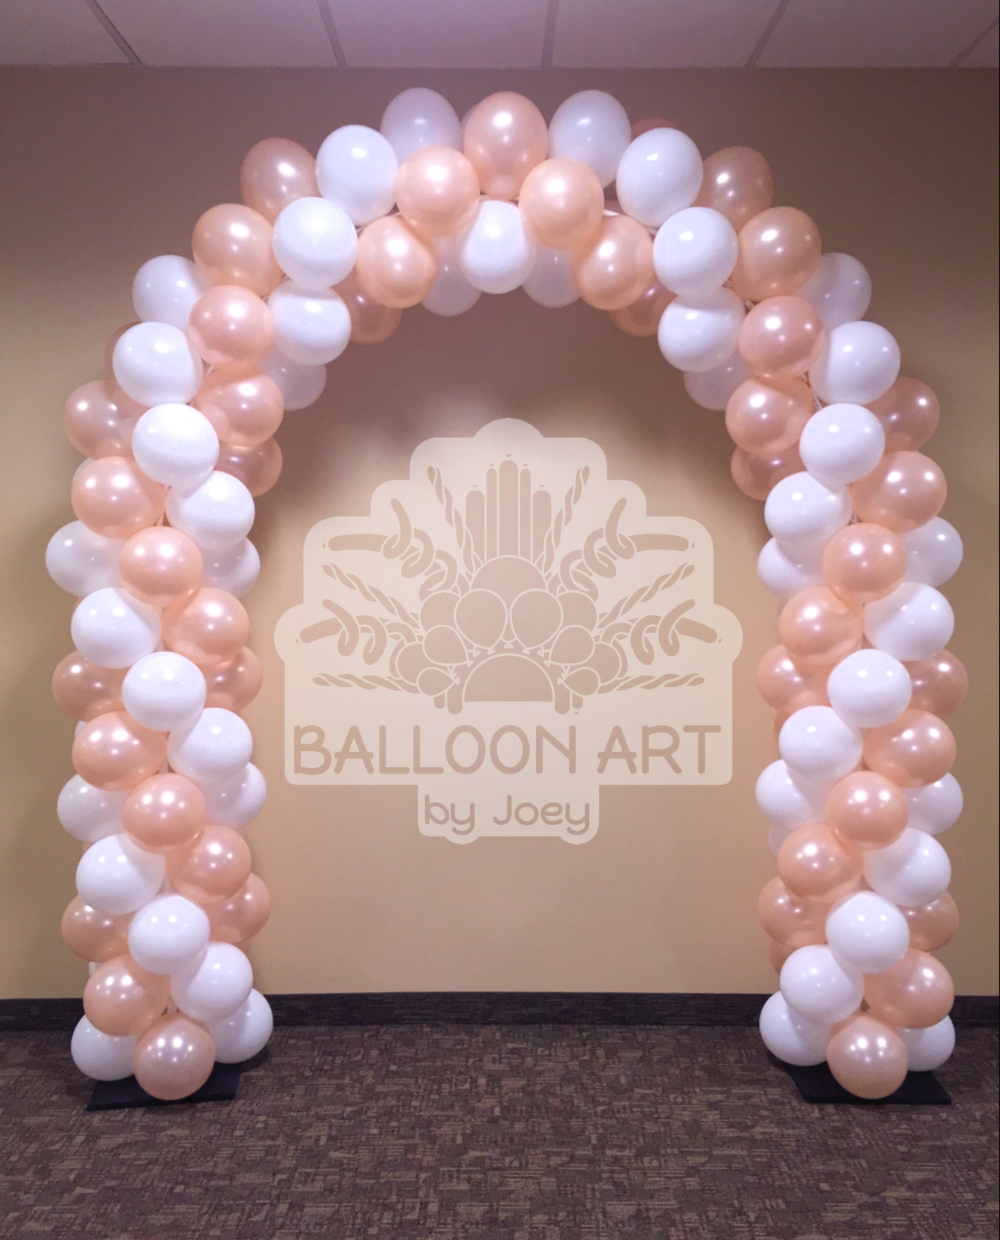 Gallery — BALLOON ART by Joey